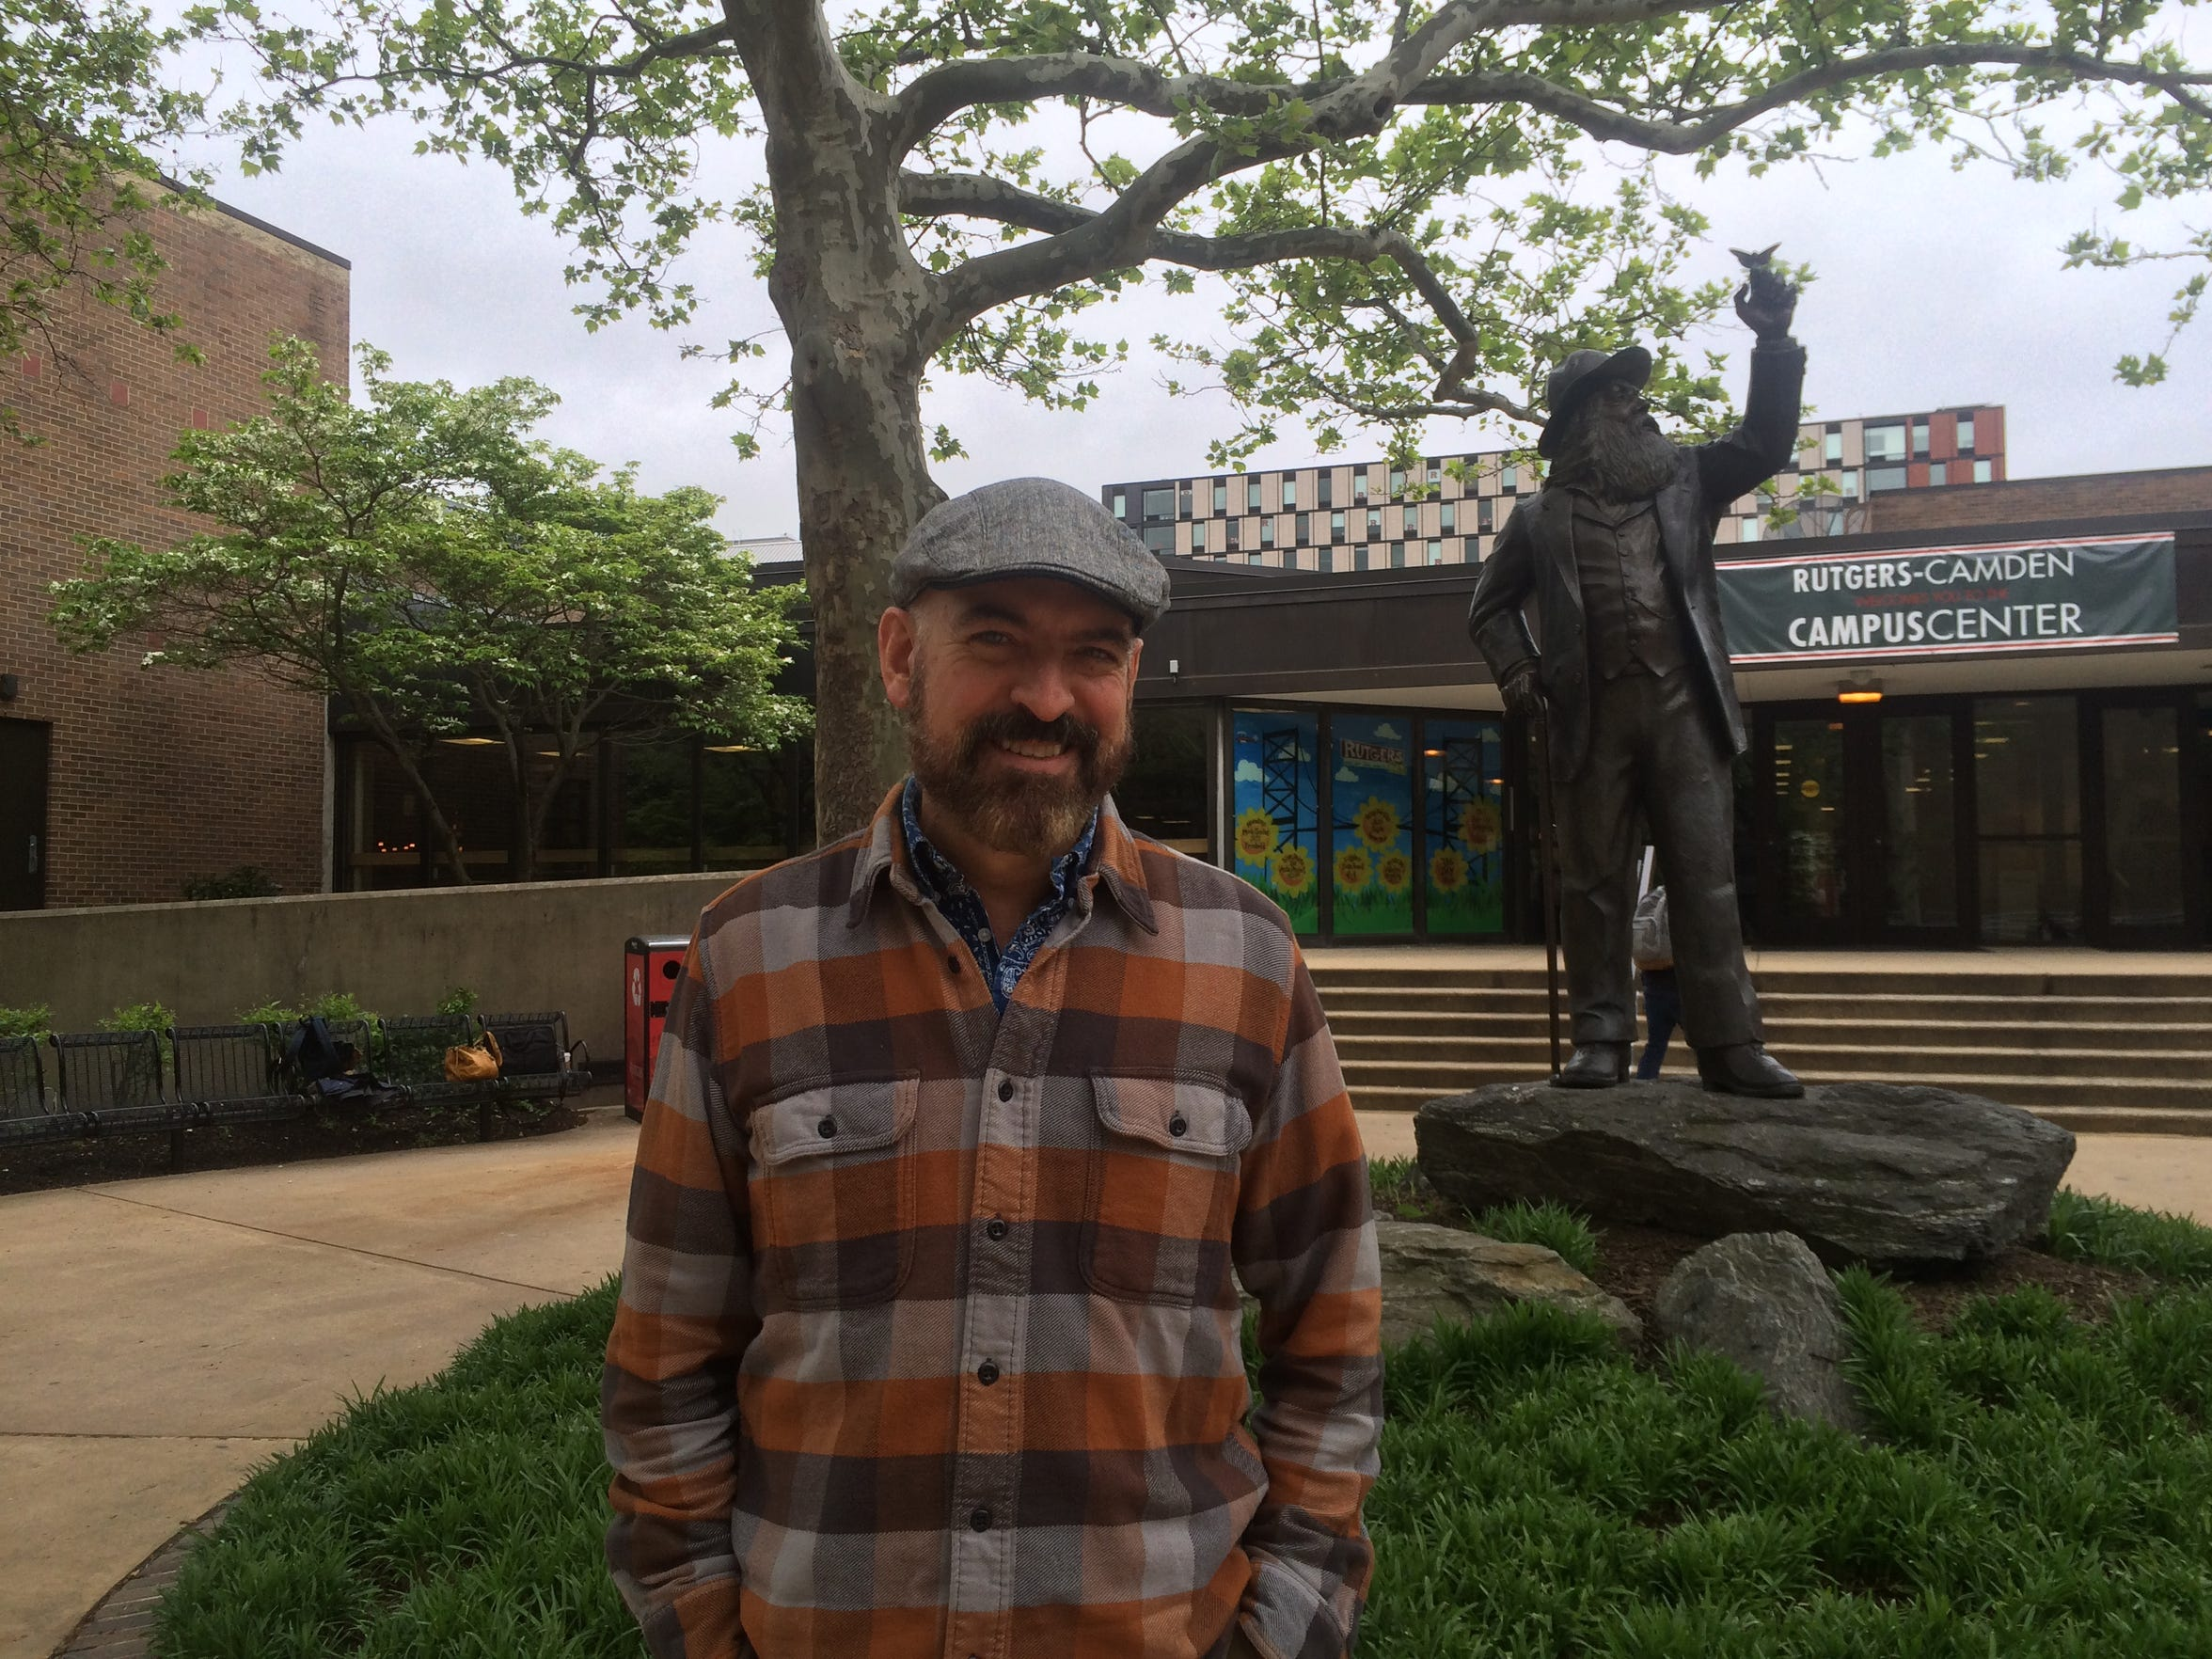 Paul Lisicky, shown here outside the Student Center at Rutgers-Camden, was recently named a 2016 Guggenheim Fellow.